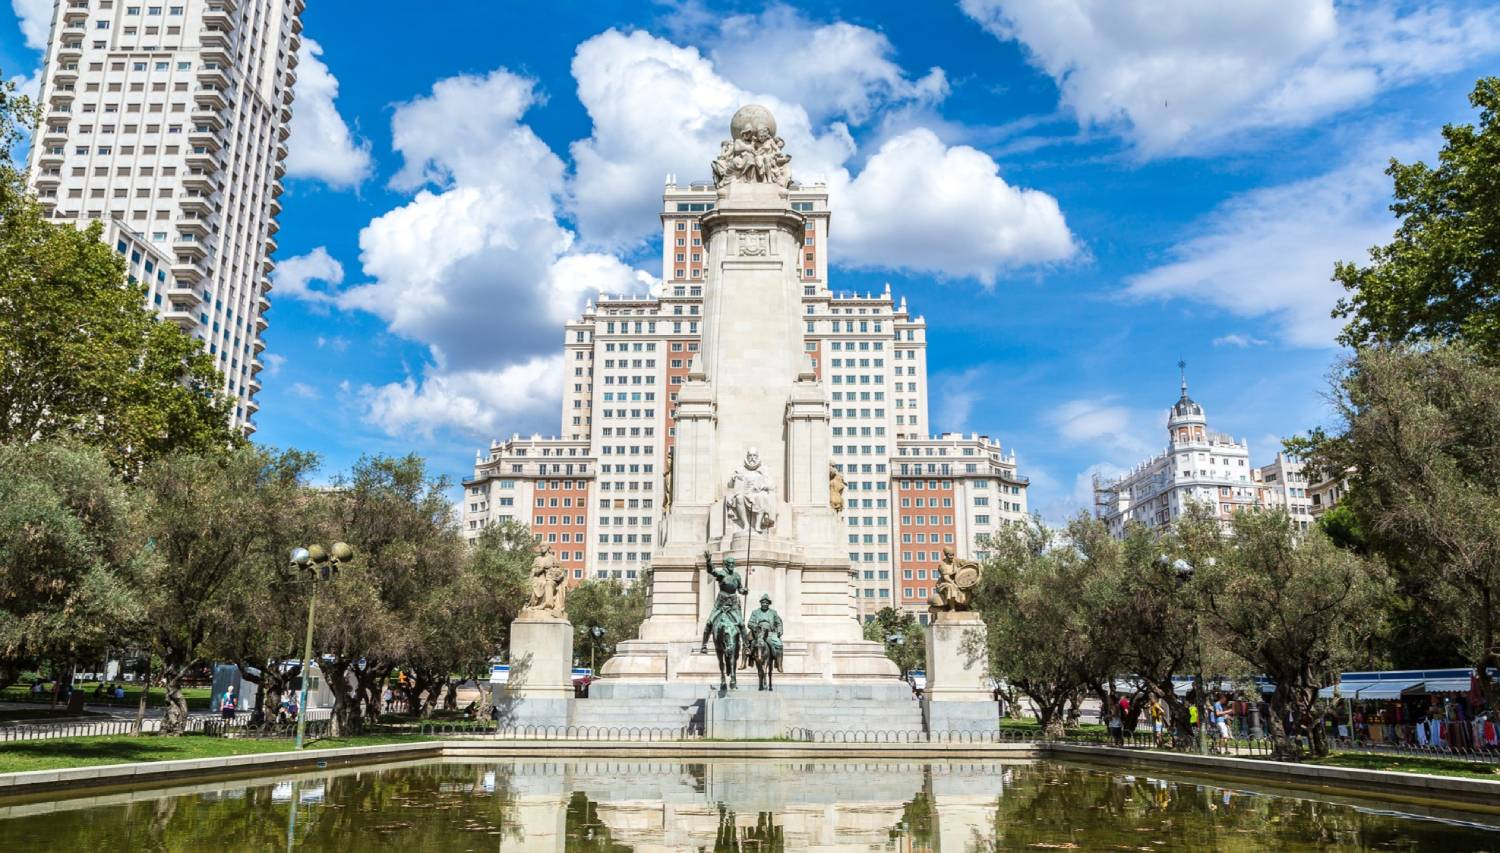 Plaza de Espana - Things To Do In Madrid